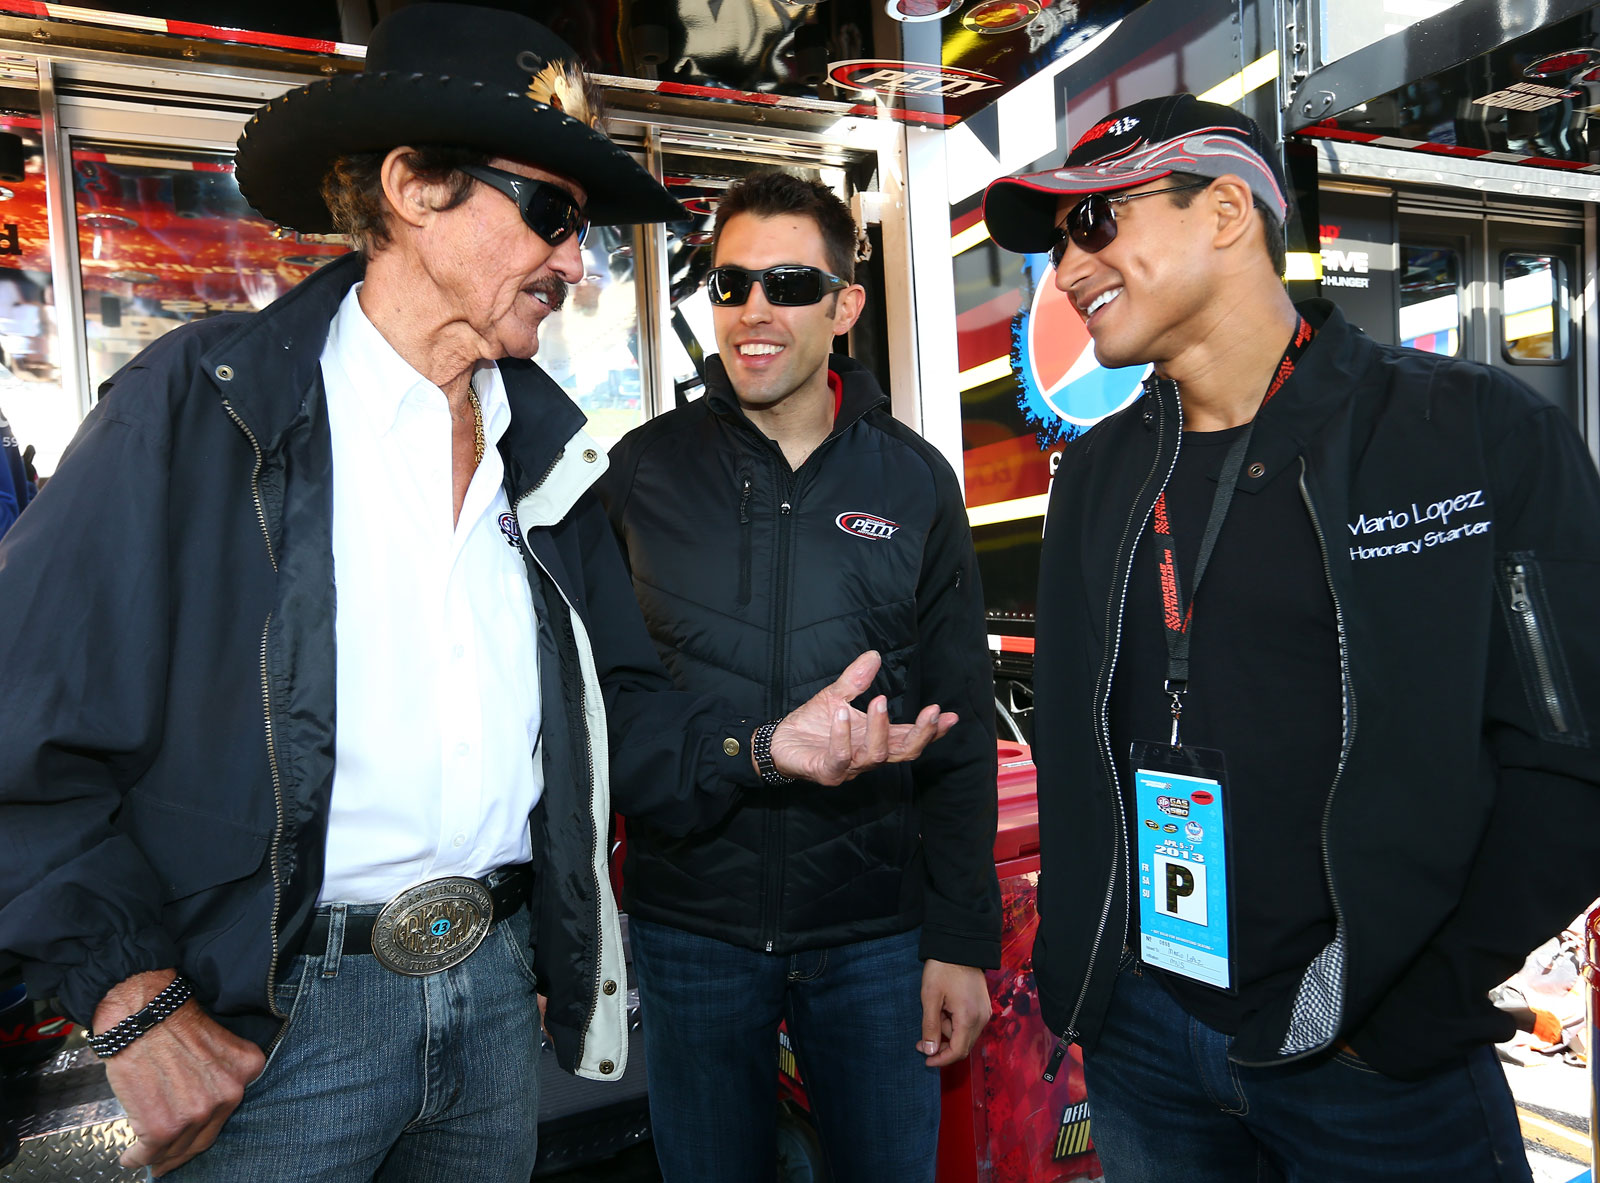 Mario-Lopez-Richard-Petty-Aric-Almirola-Martinsville-NASCAR-April-2013